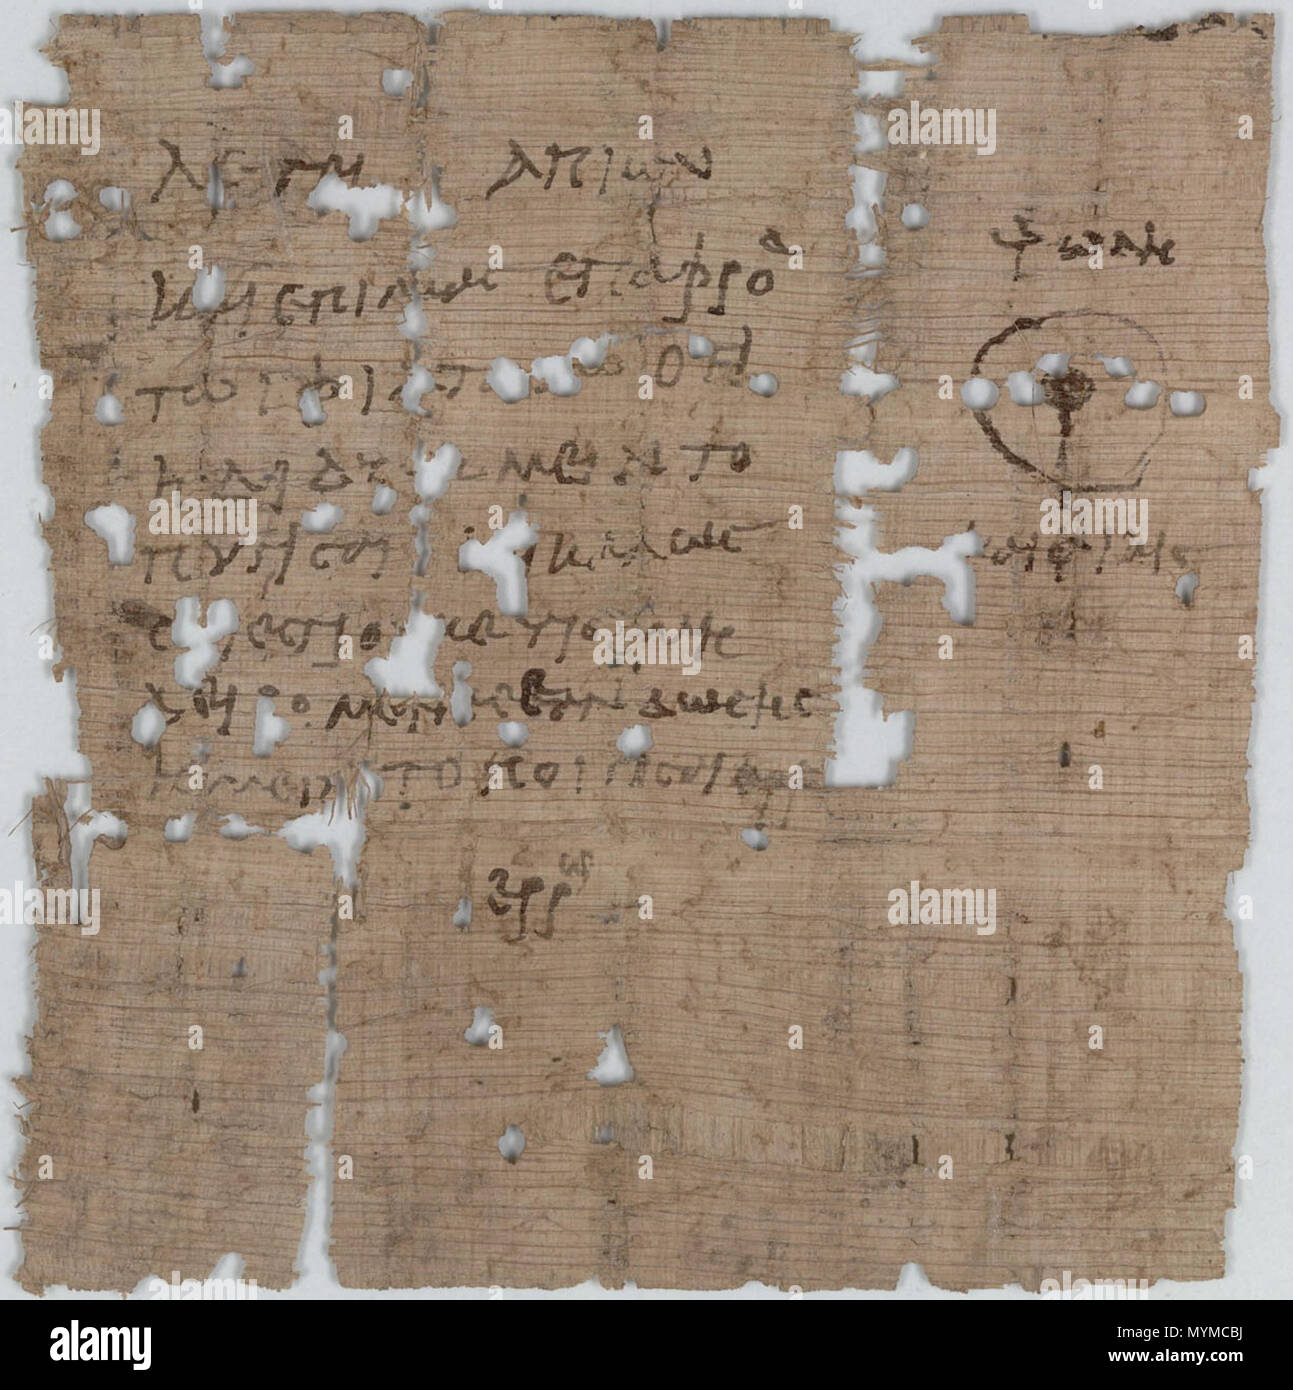 """. English: Papyrus Oxyrhychus 3070 - Indecent Proposal: """"Apion and Epimas say to their very dear Epaphroditus: If you let us bugger you and it's OK with you, we shall stop thrashing you — if you let us bugger you. Keep well! Keep well!"""" . 1st century. Unknown 408 Papyrus Oxyrhychus 3070 - Indecent Proposal - Stock Image"""